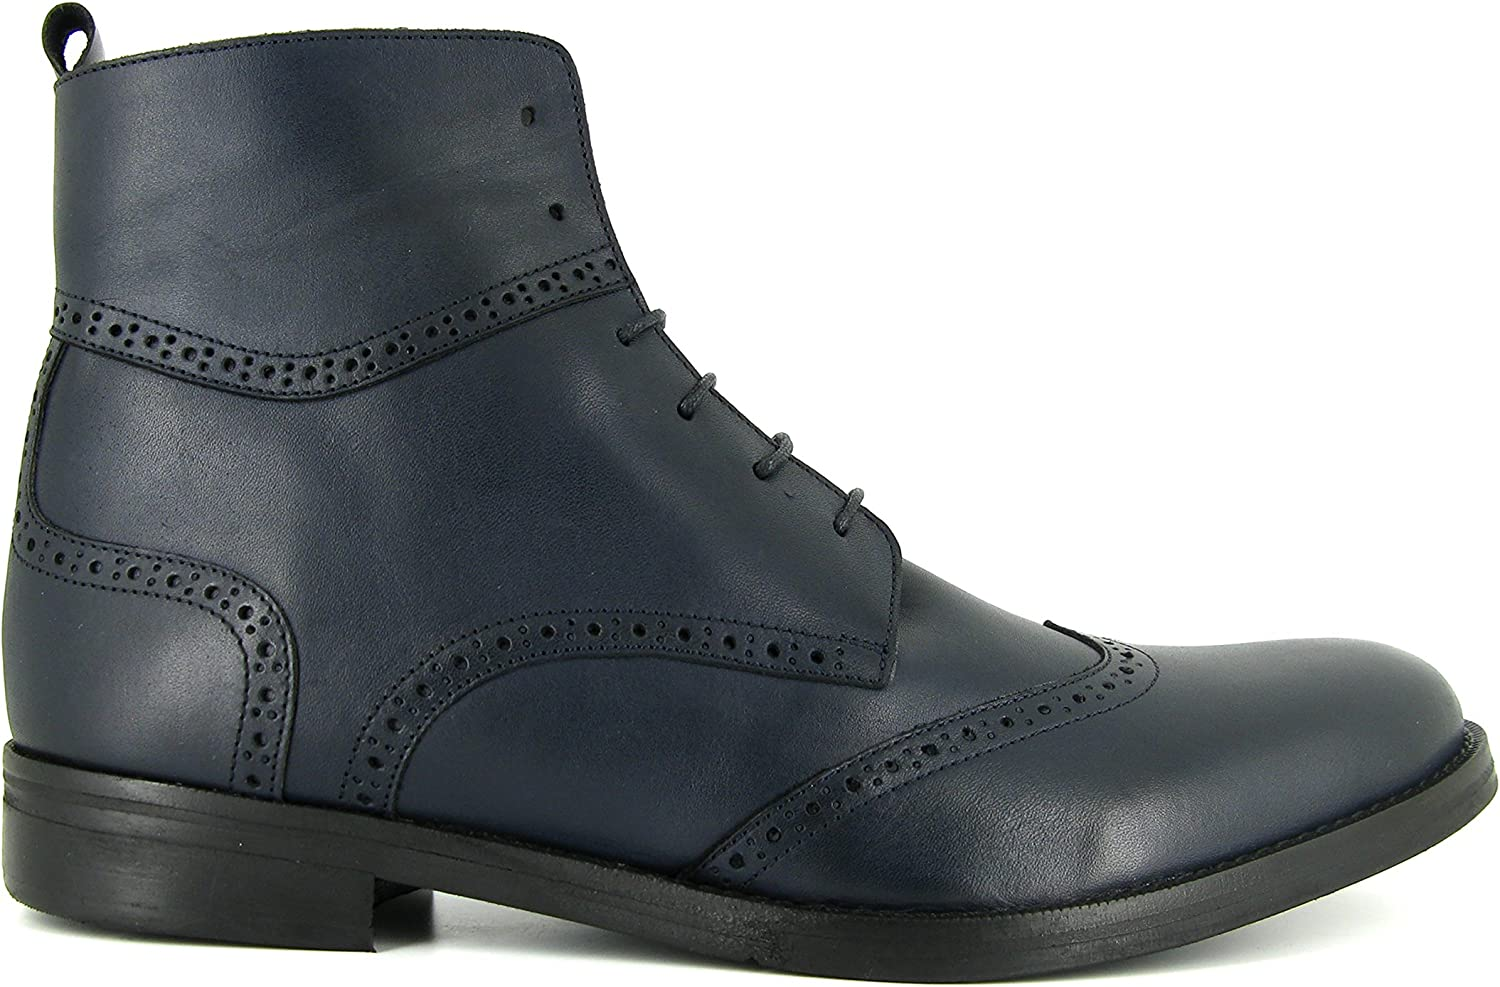 J.Bradford Man shoes Boots bluee Navy Leather JB-Victor